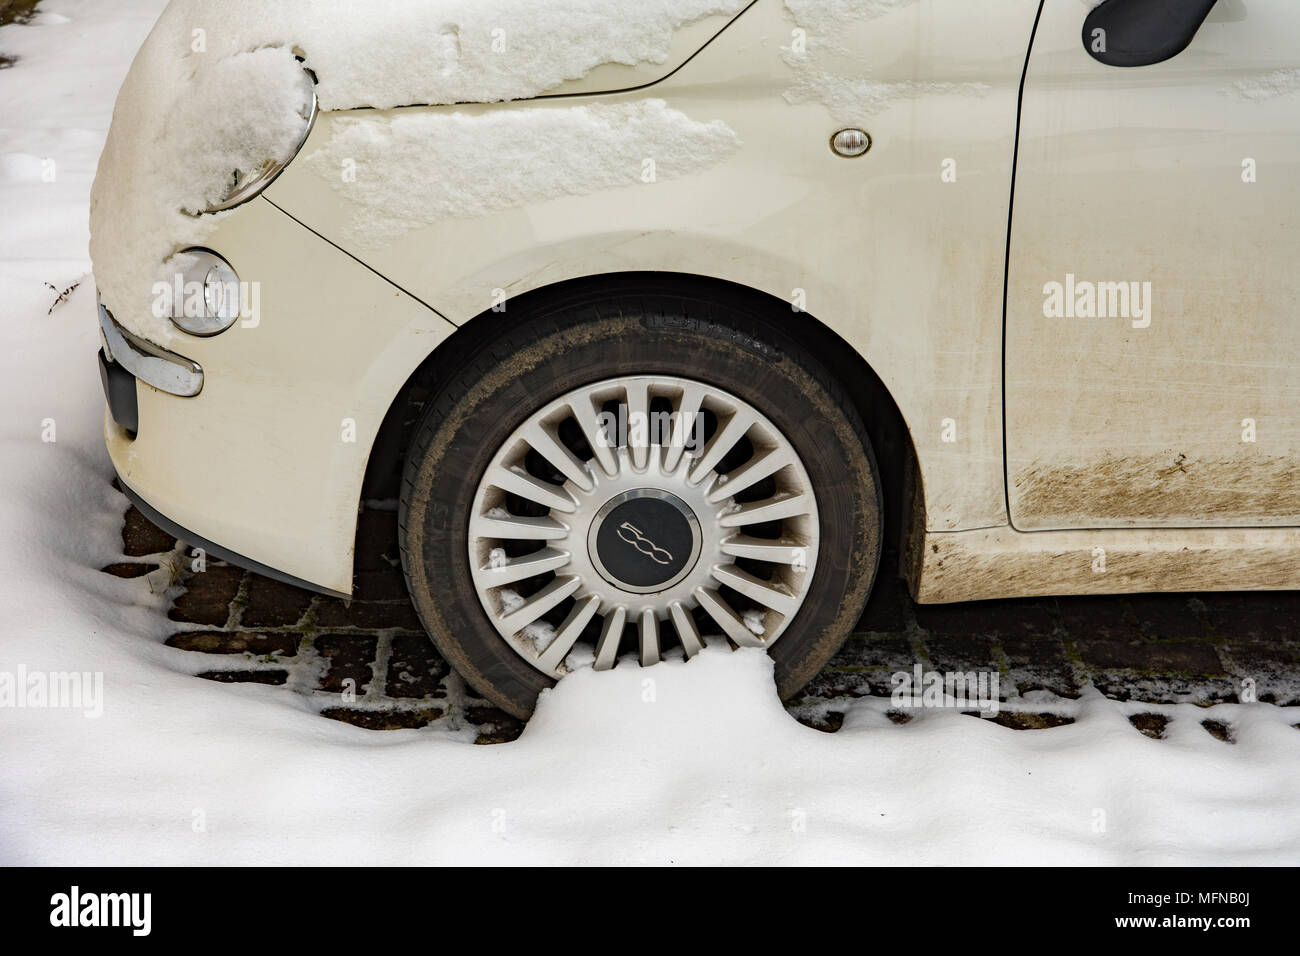 Fiat 500 Lounge in the snow - Stock Image